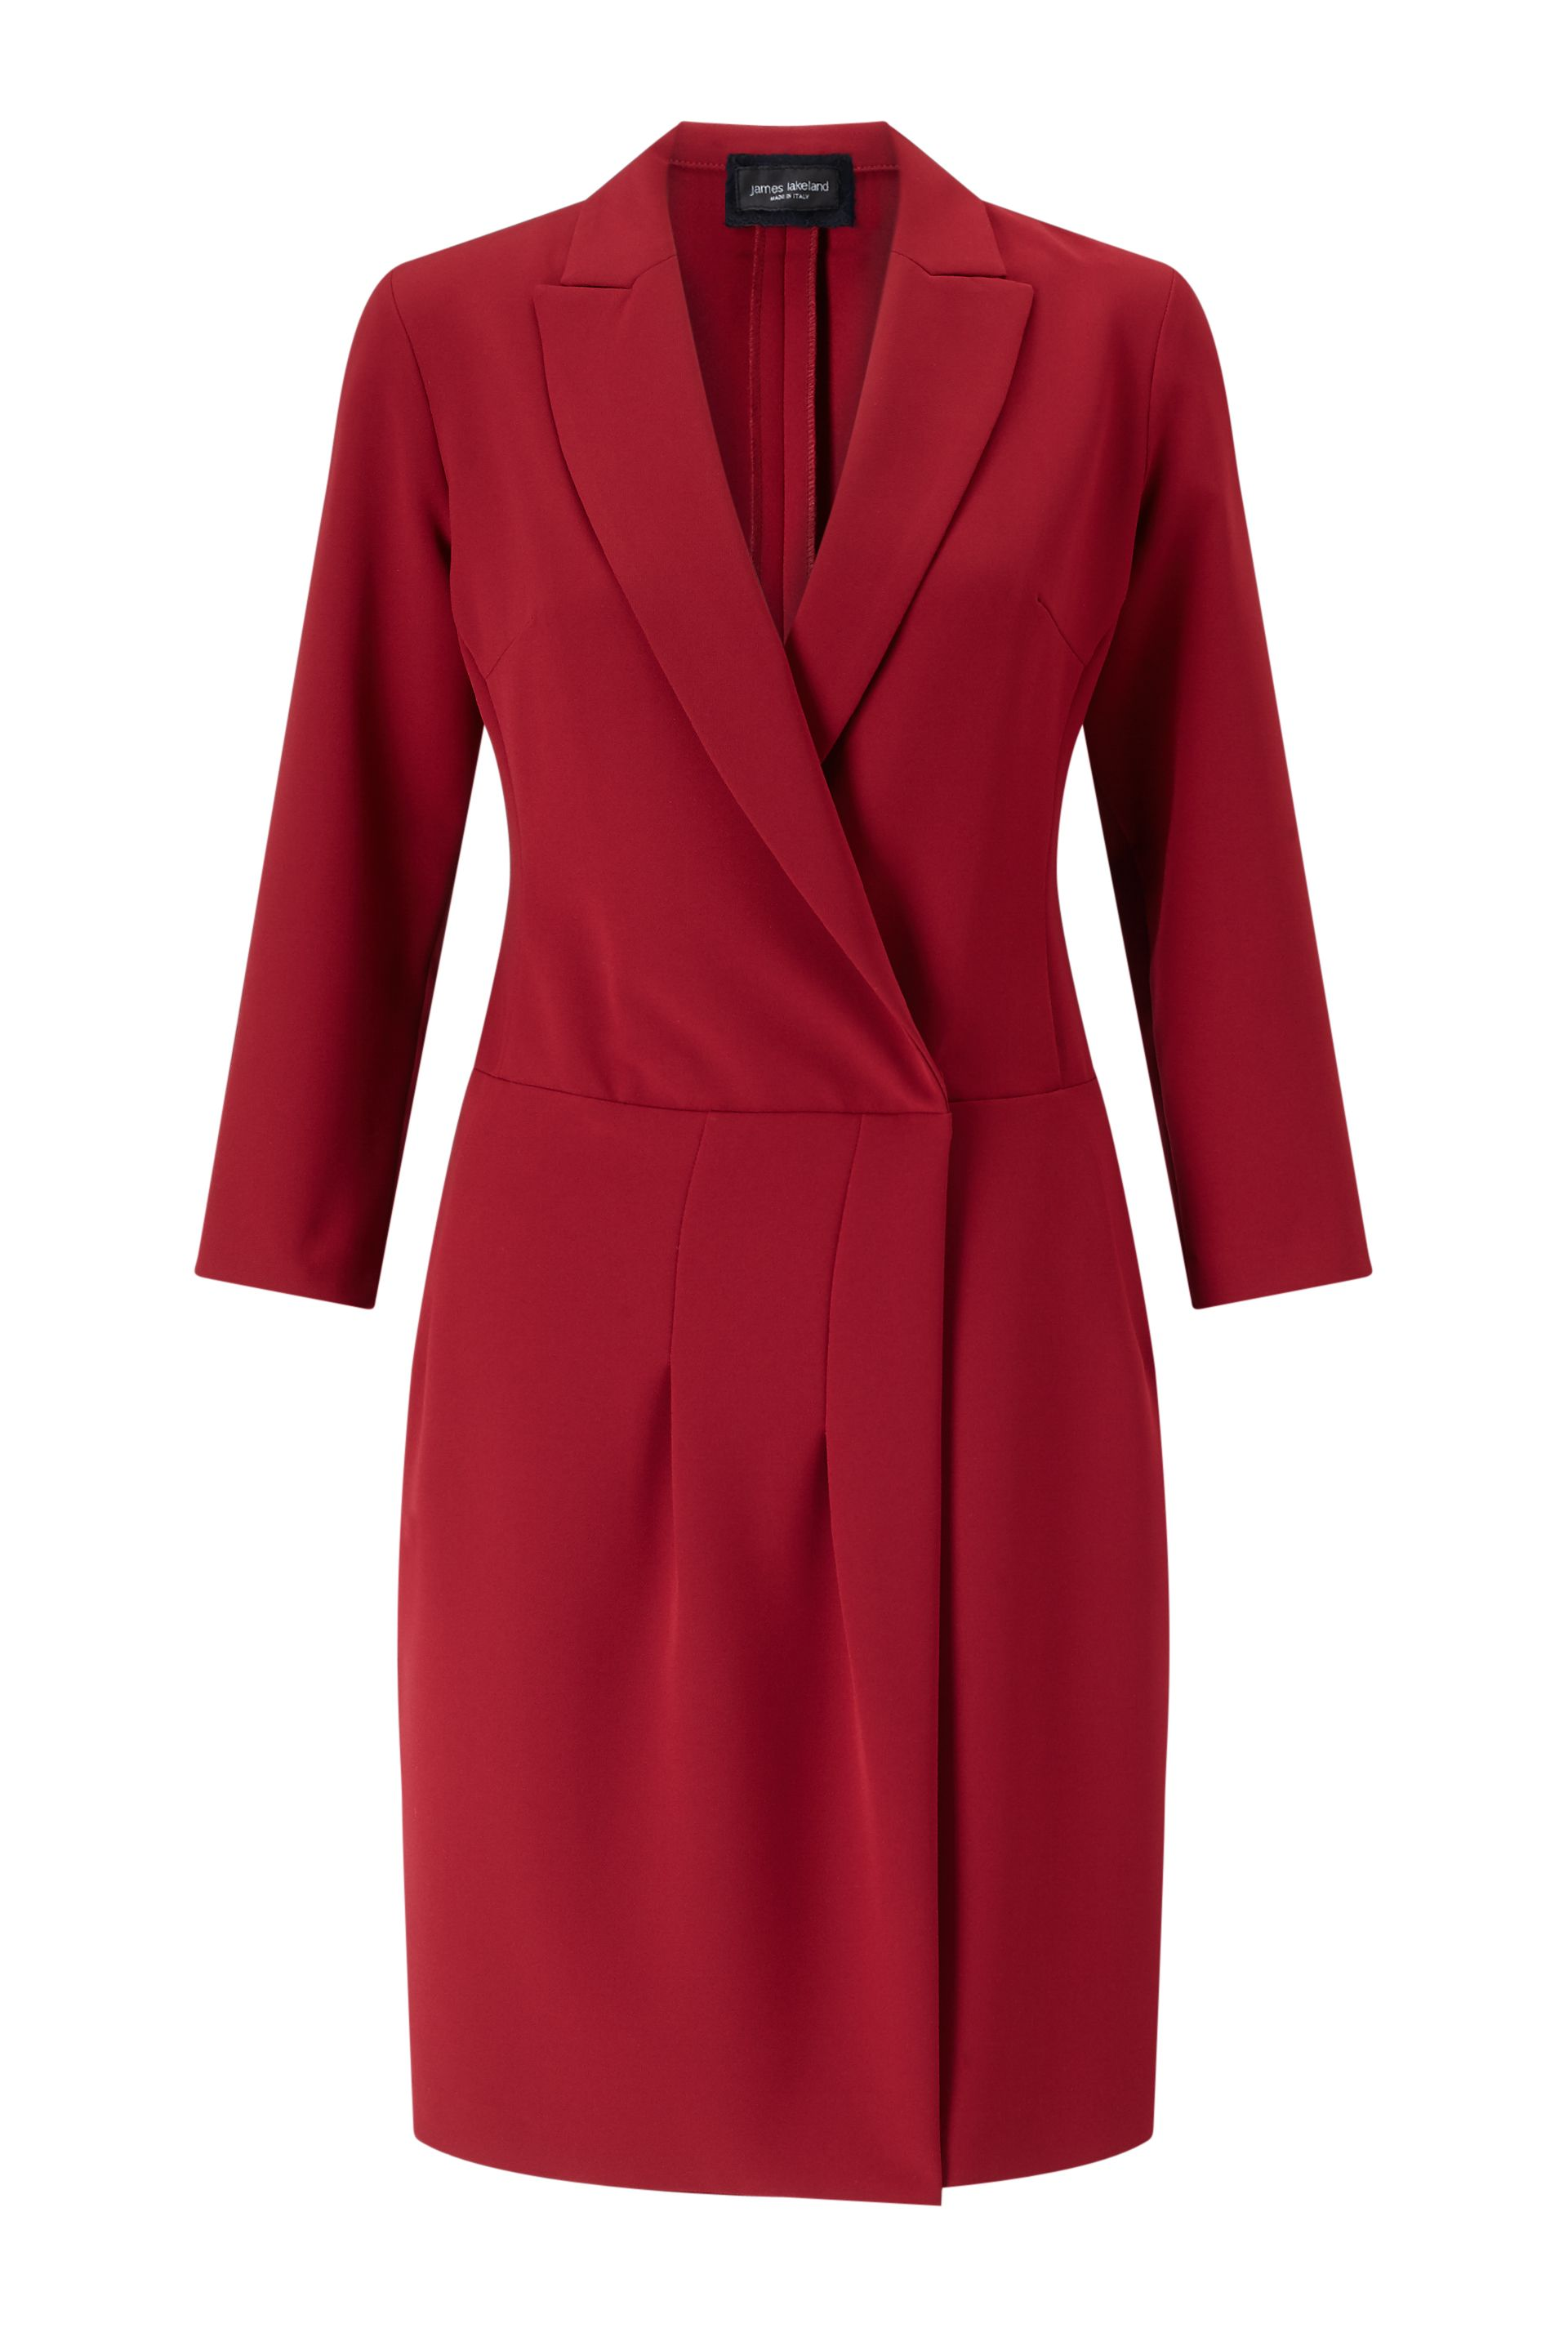 James Lakeland Crossover Dress, Red